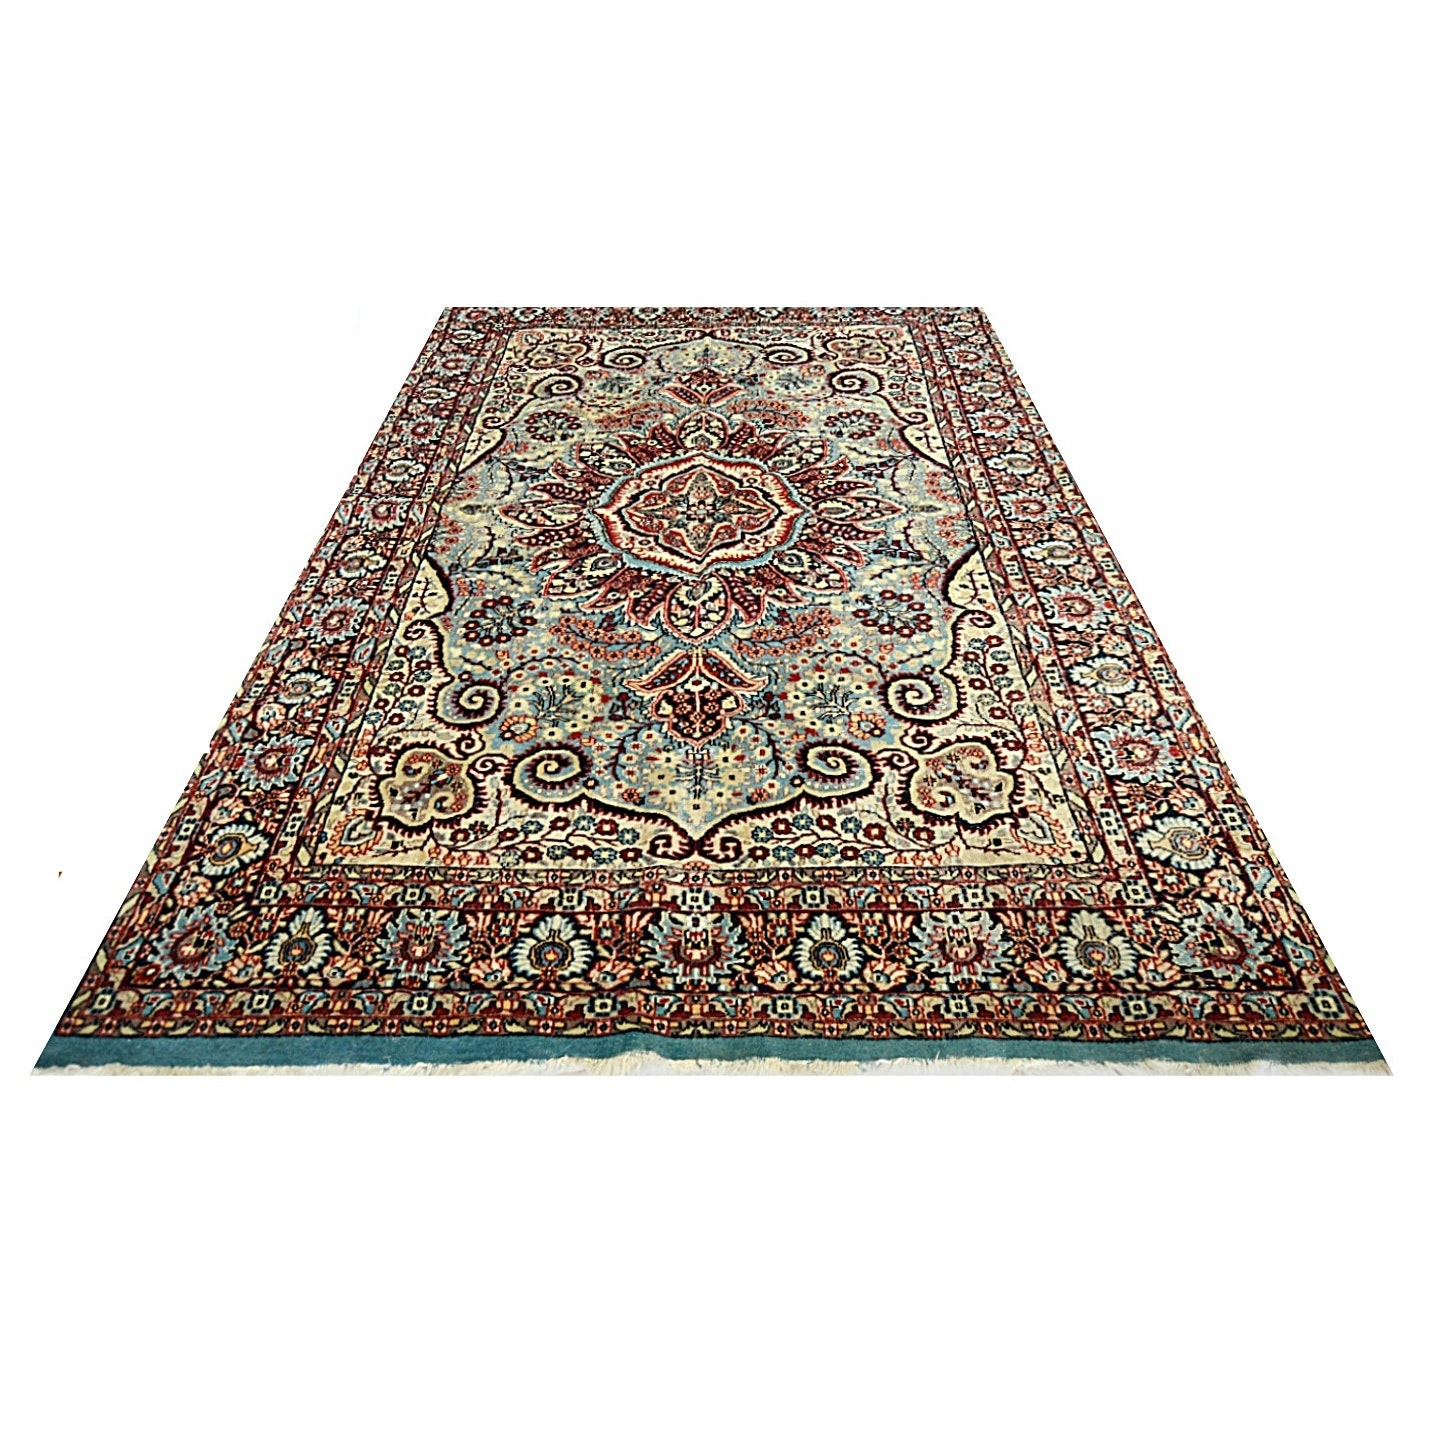 Vintage Hand Knotted Persian Style Rug